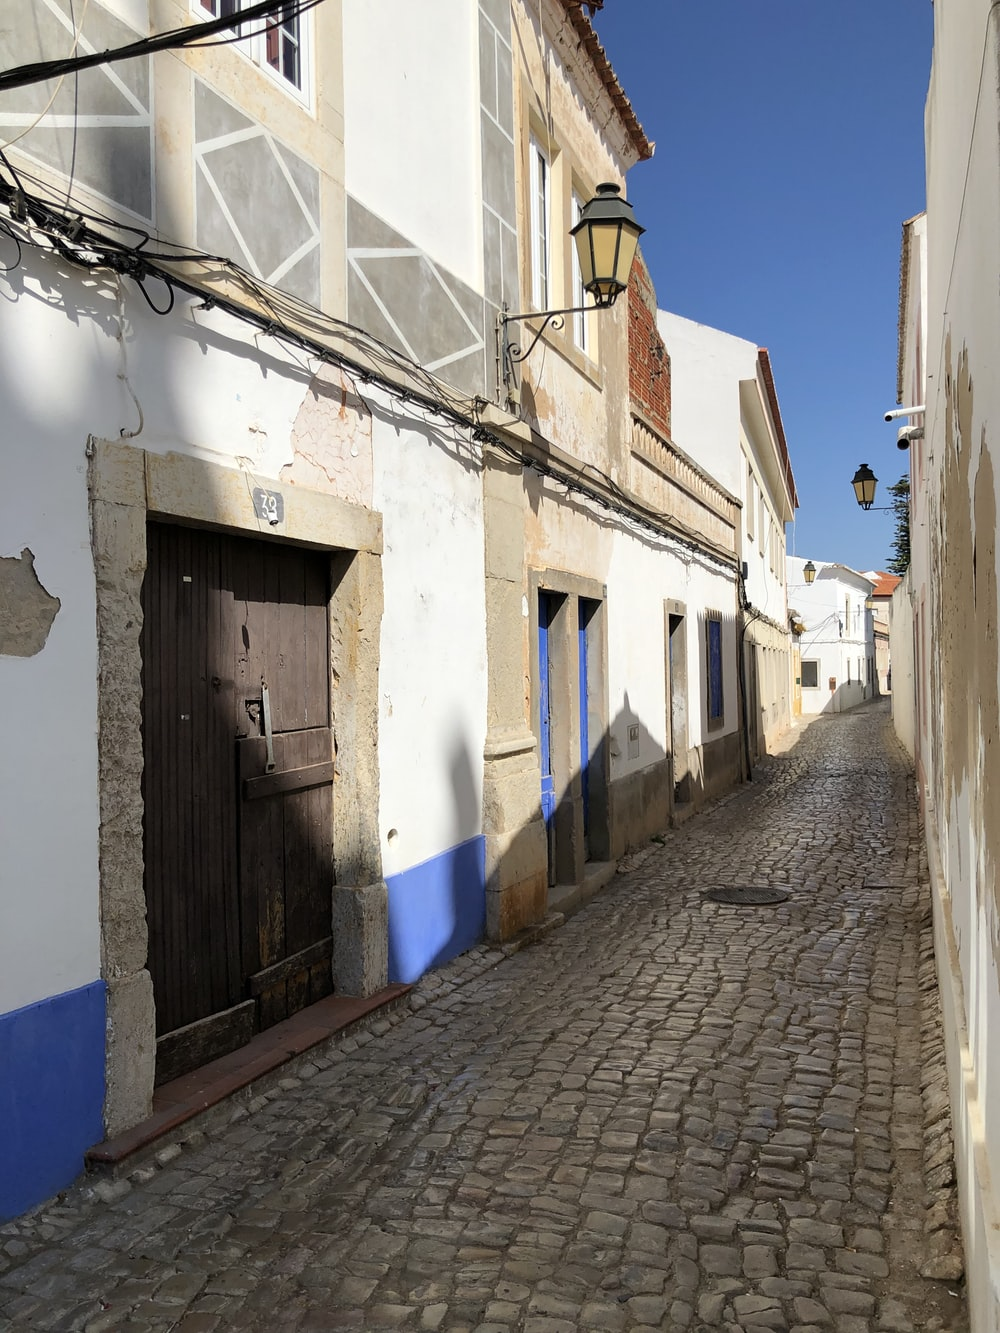 empty hallway surrounded by houses under blue sky